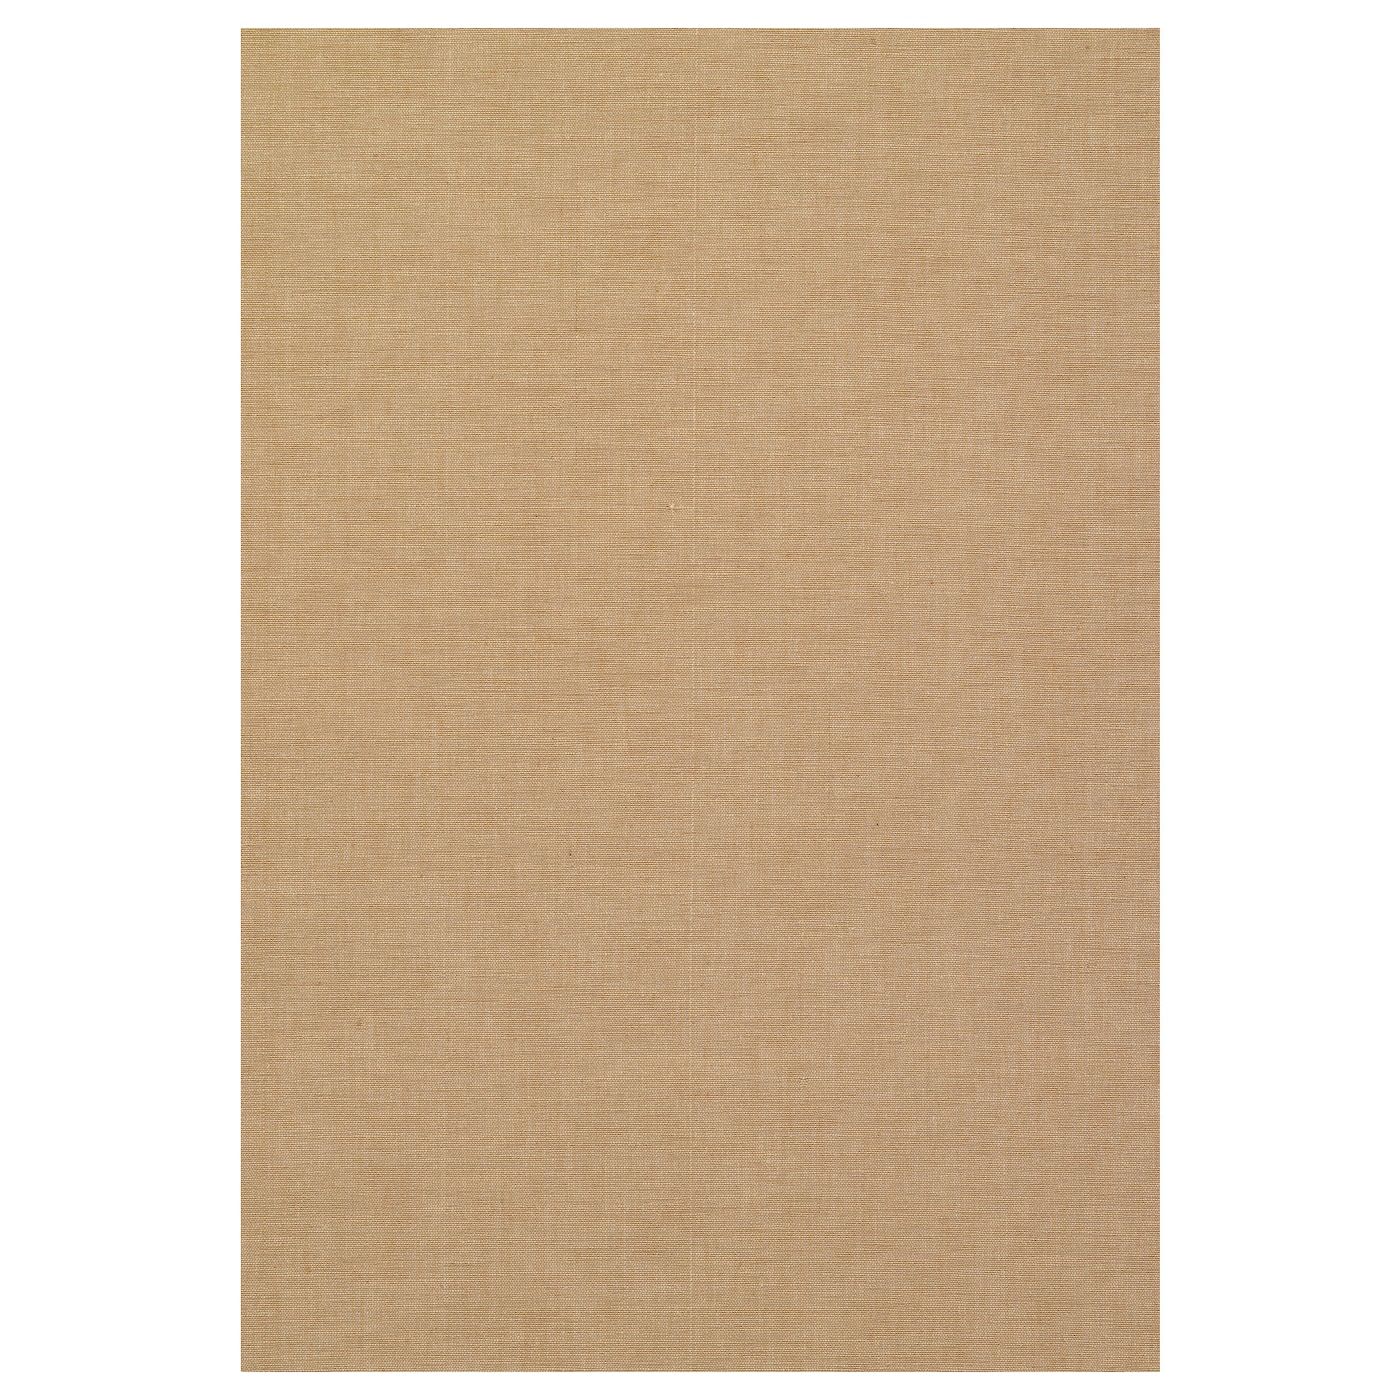 Fabric curtain fabric upholstery fabric ikea for Teppich beige ikea